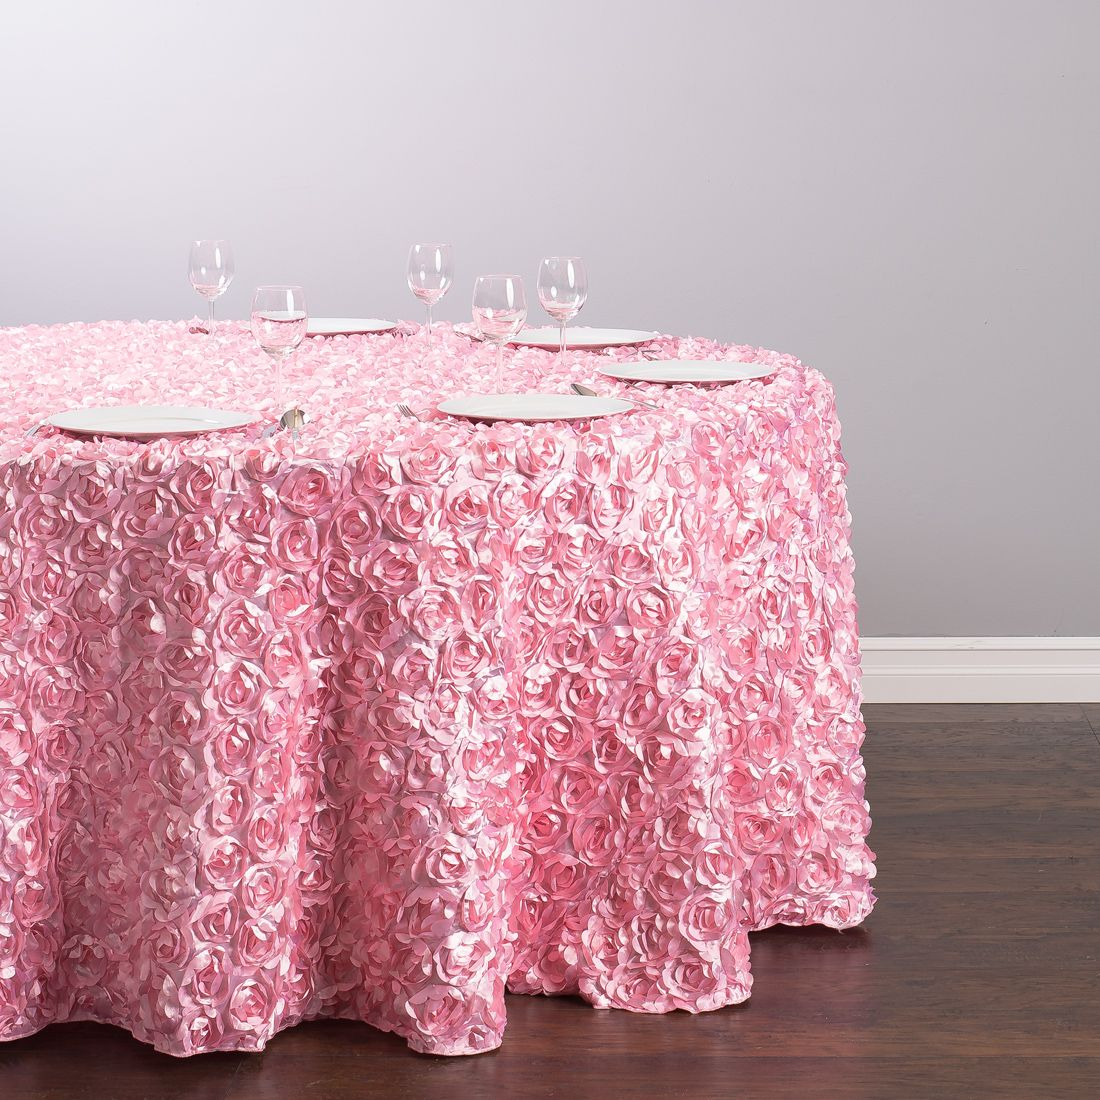 130 in. Round Rosette Satin Tablecloth Pink | Avent/Myree 9-12-15 ...